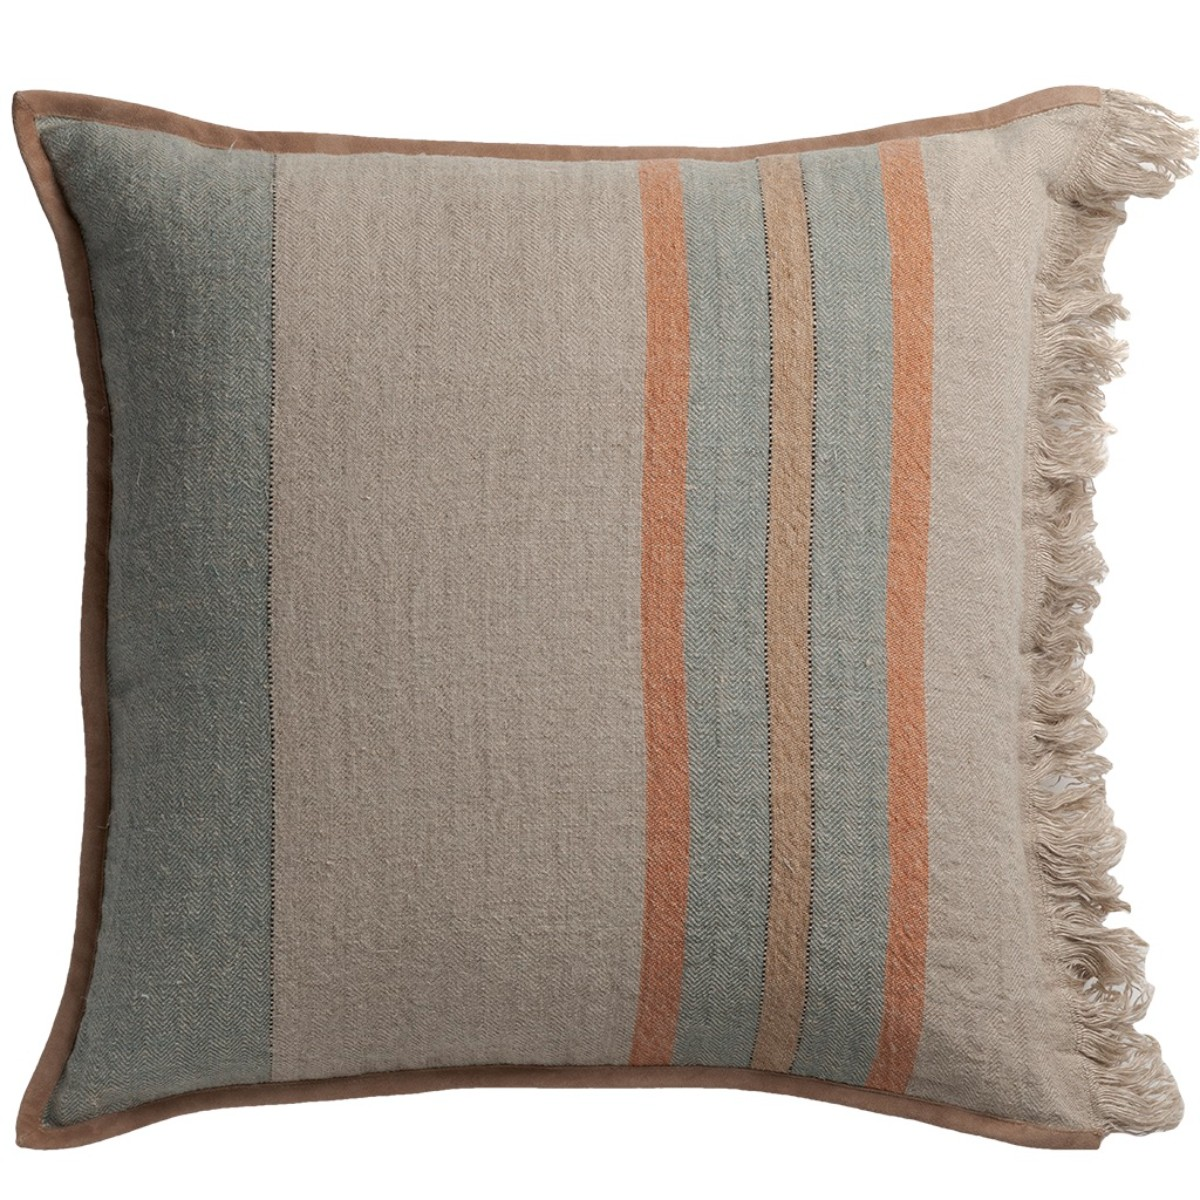 de Le Cuona | Striped Linen Cushion With Fringe & Suede Trim Teal/Clay